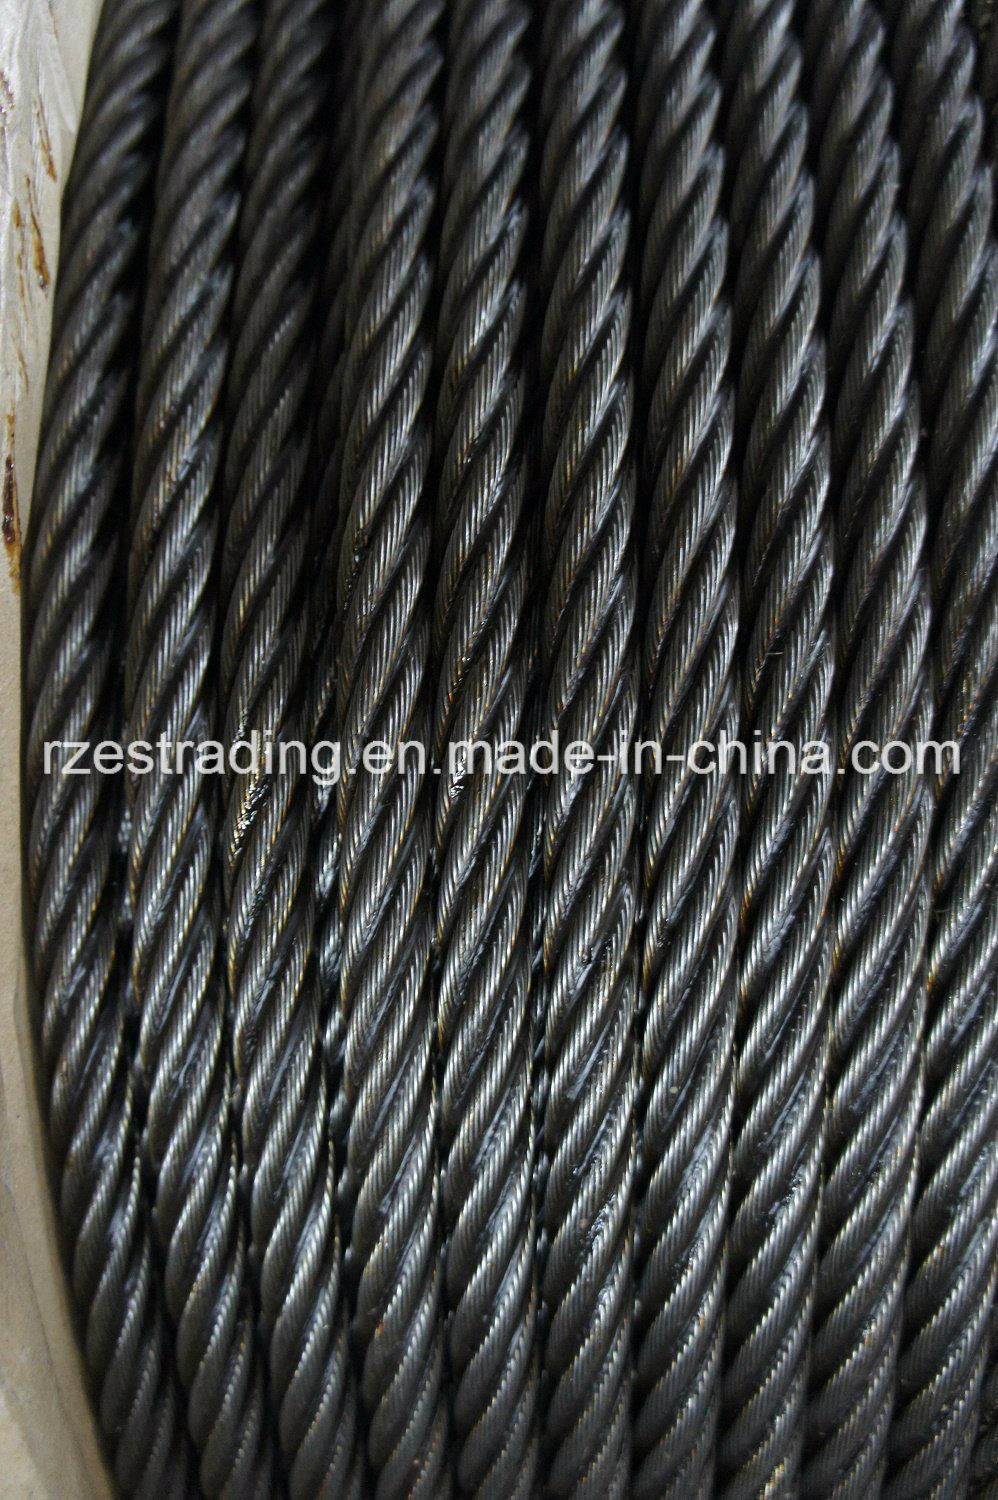 China 6*36ws+FC Ungalvanized Steel Wire Rope for Mining - China Wire ...